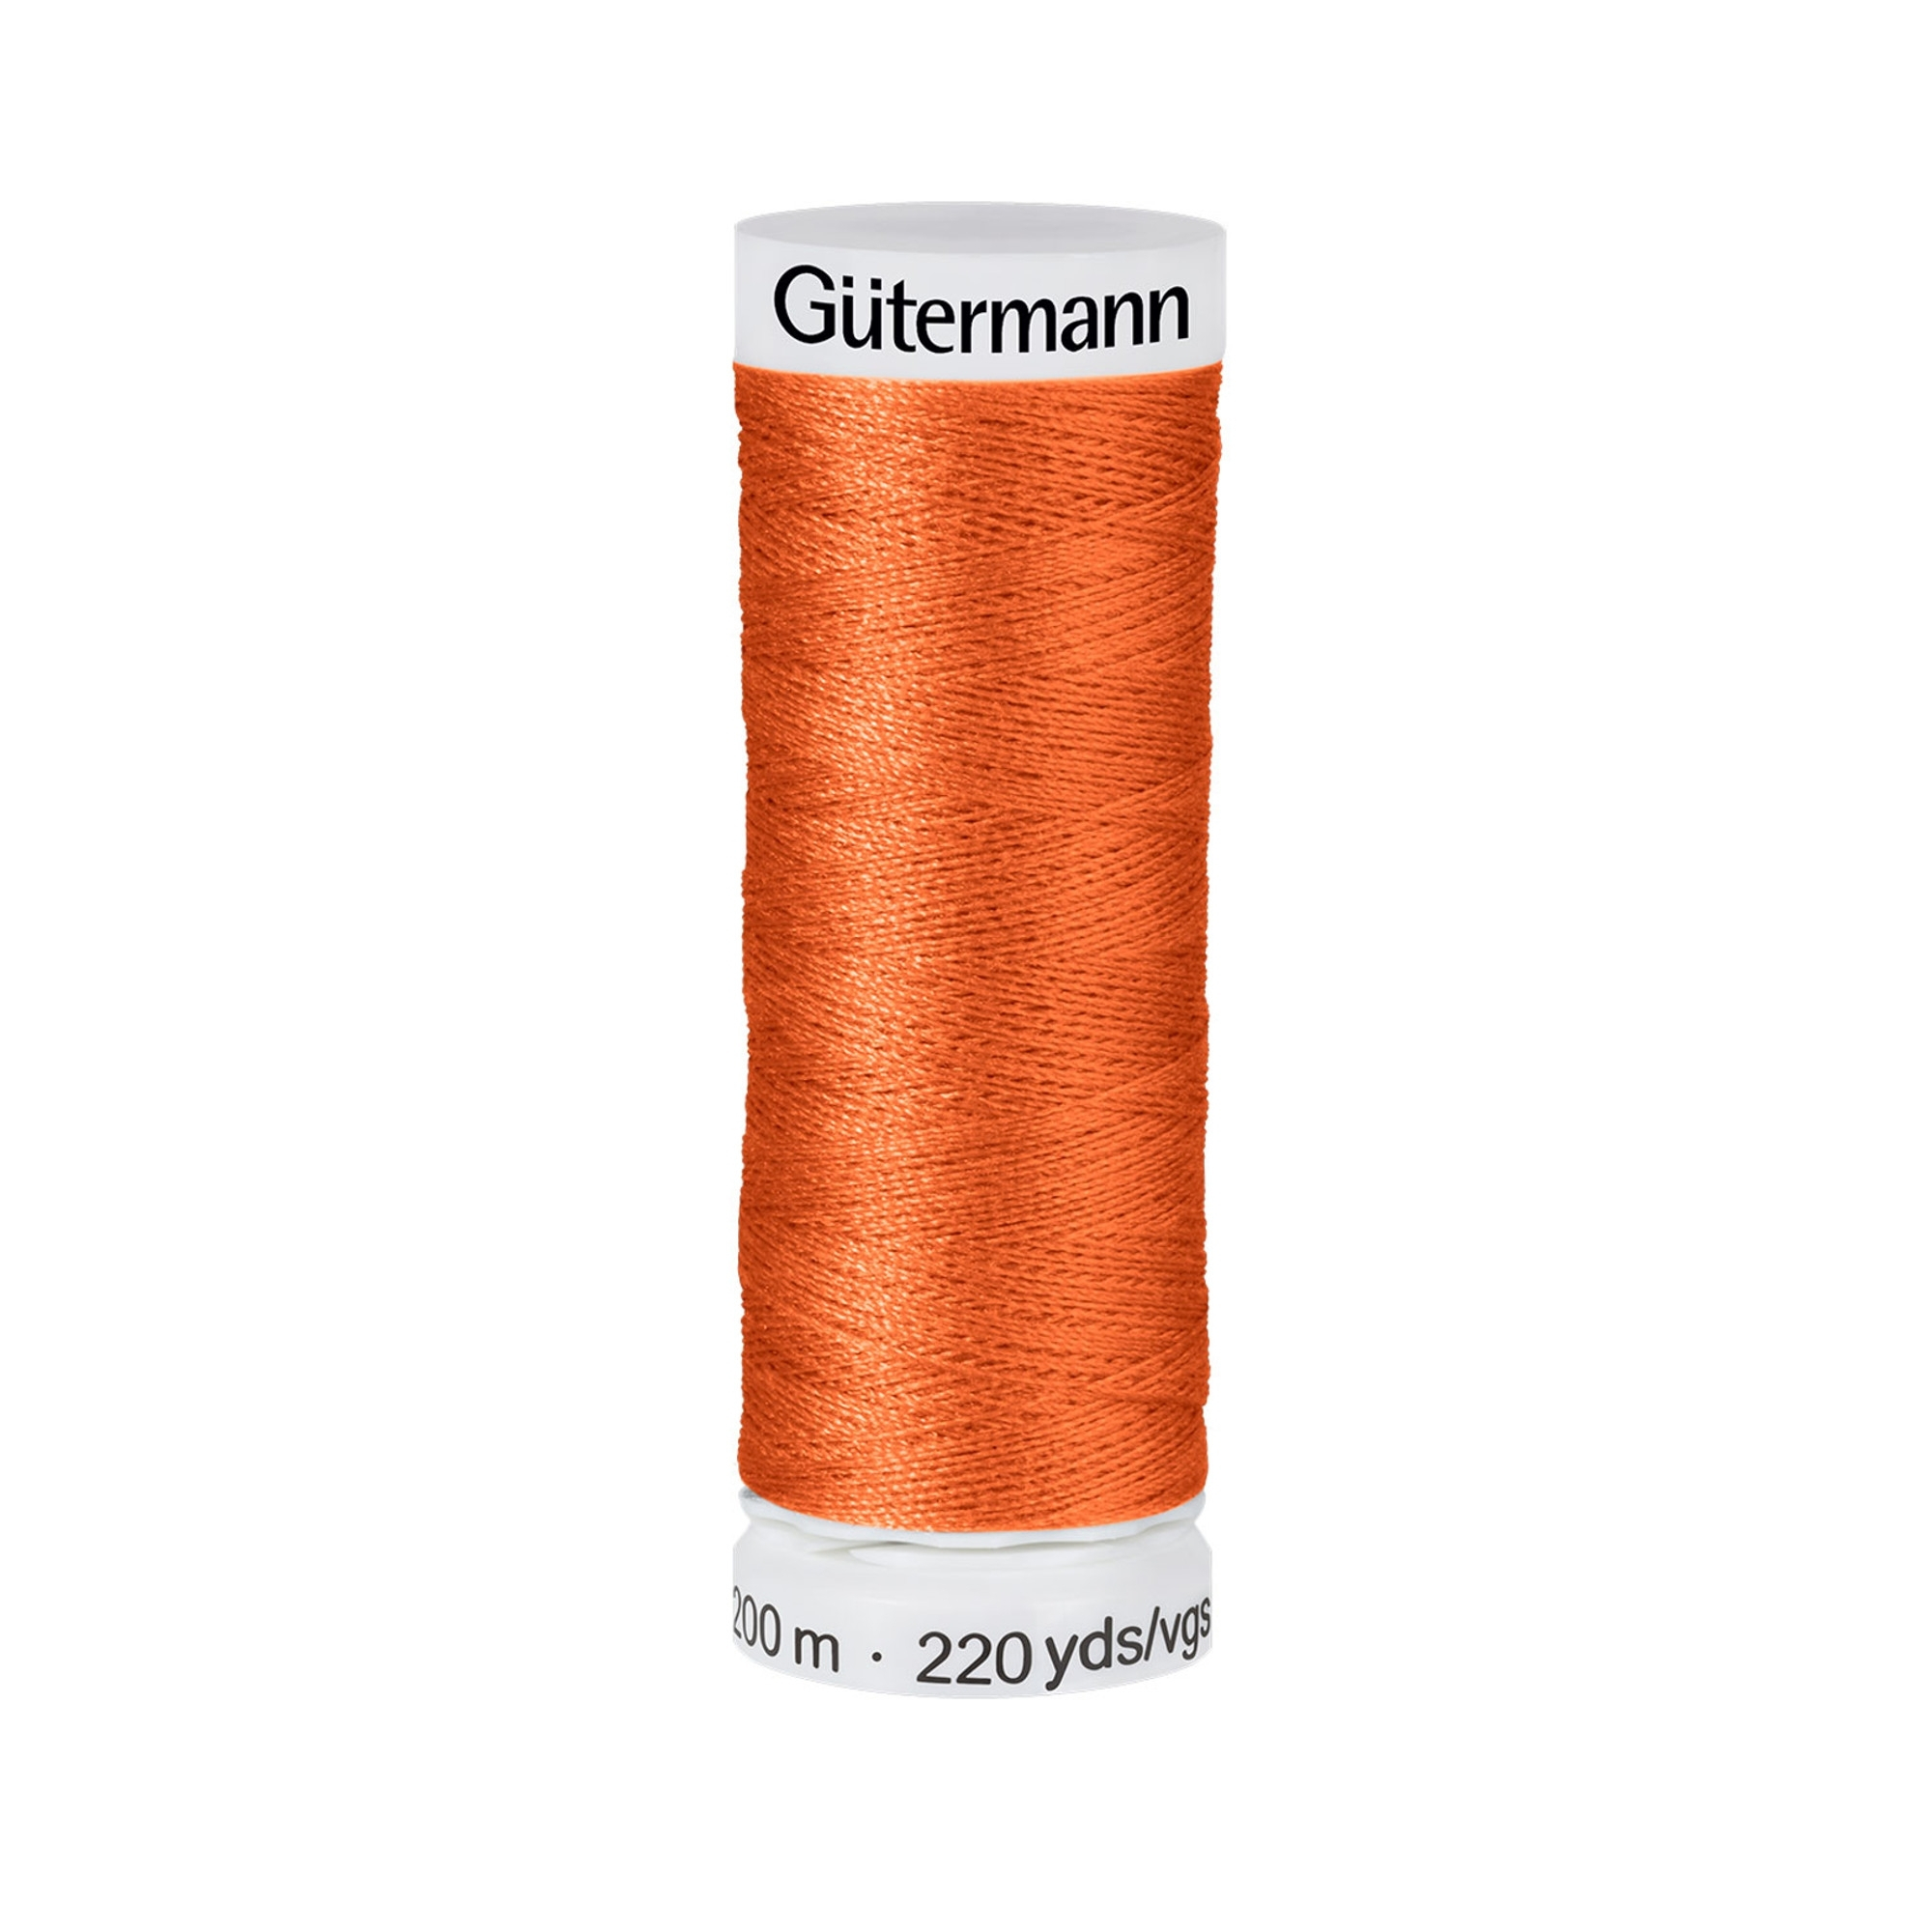 Gütermann Allesnäher (982) pastellorange | 200M-982 | orange